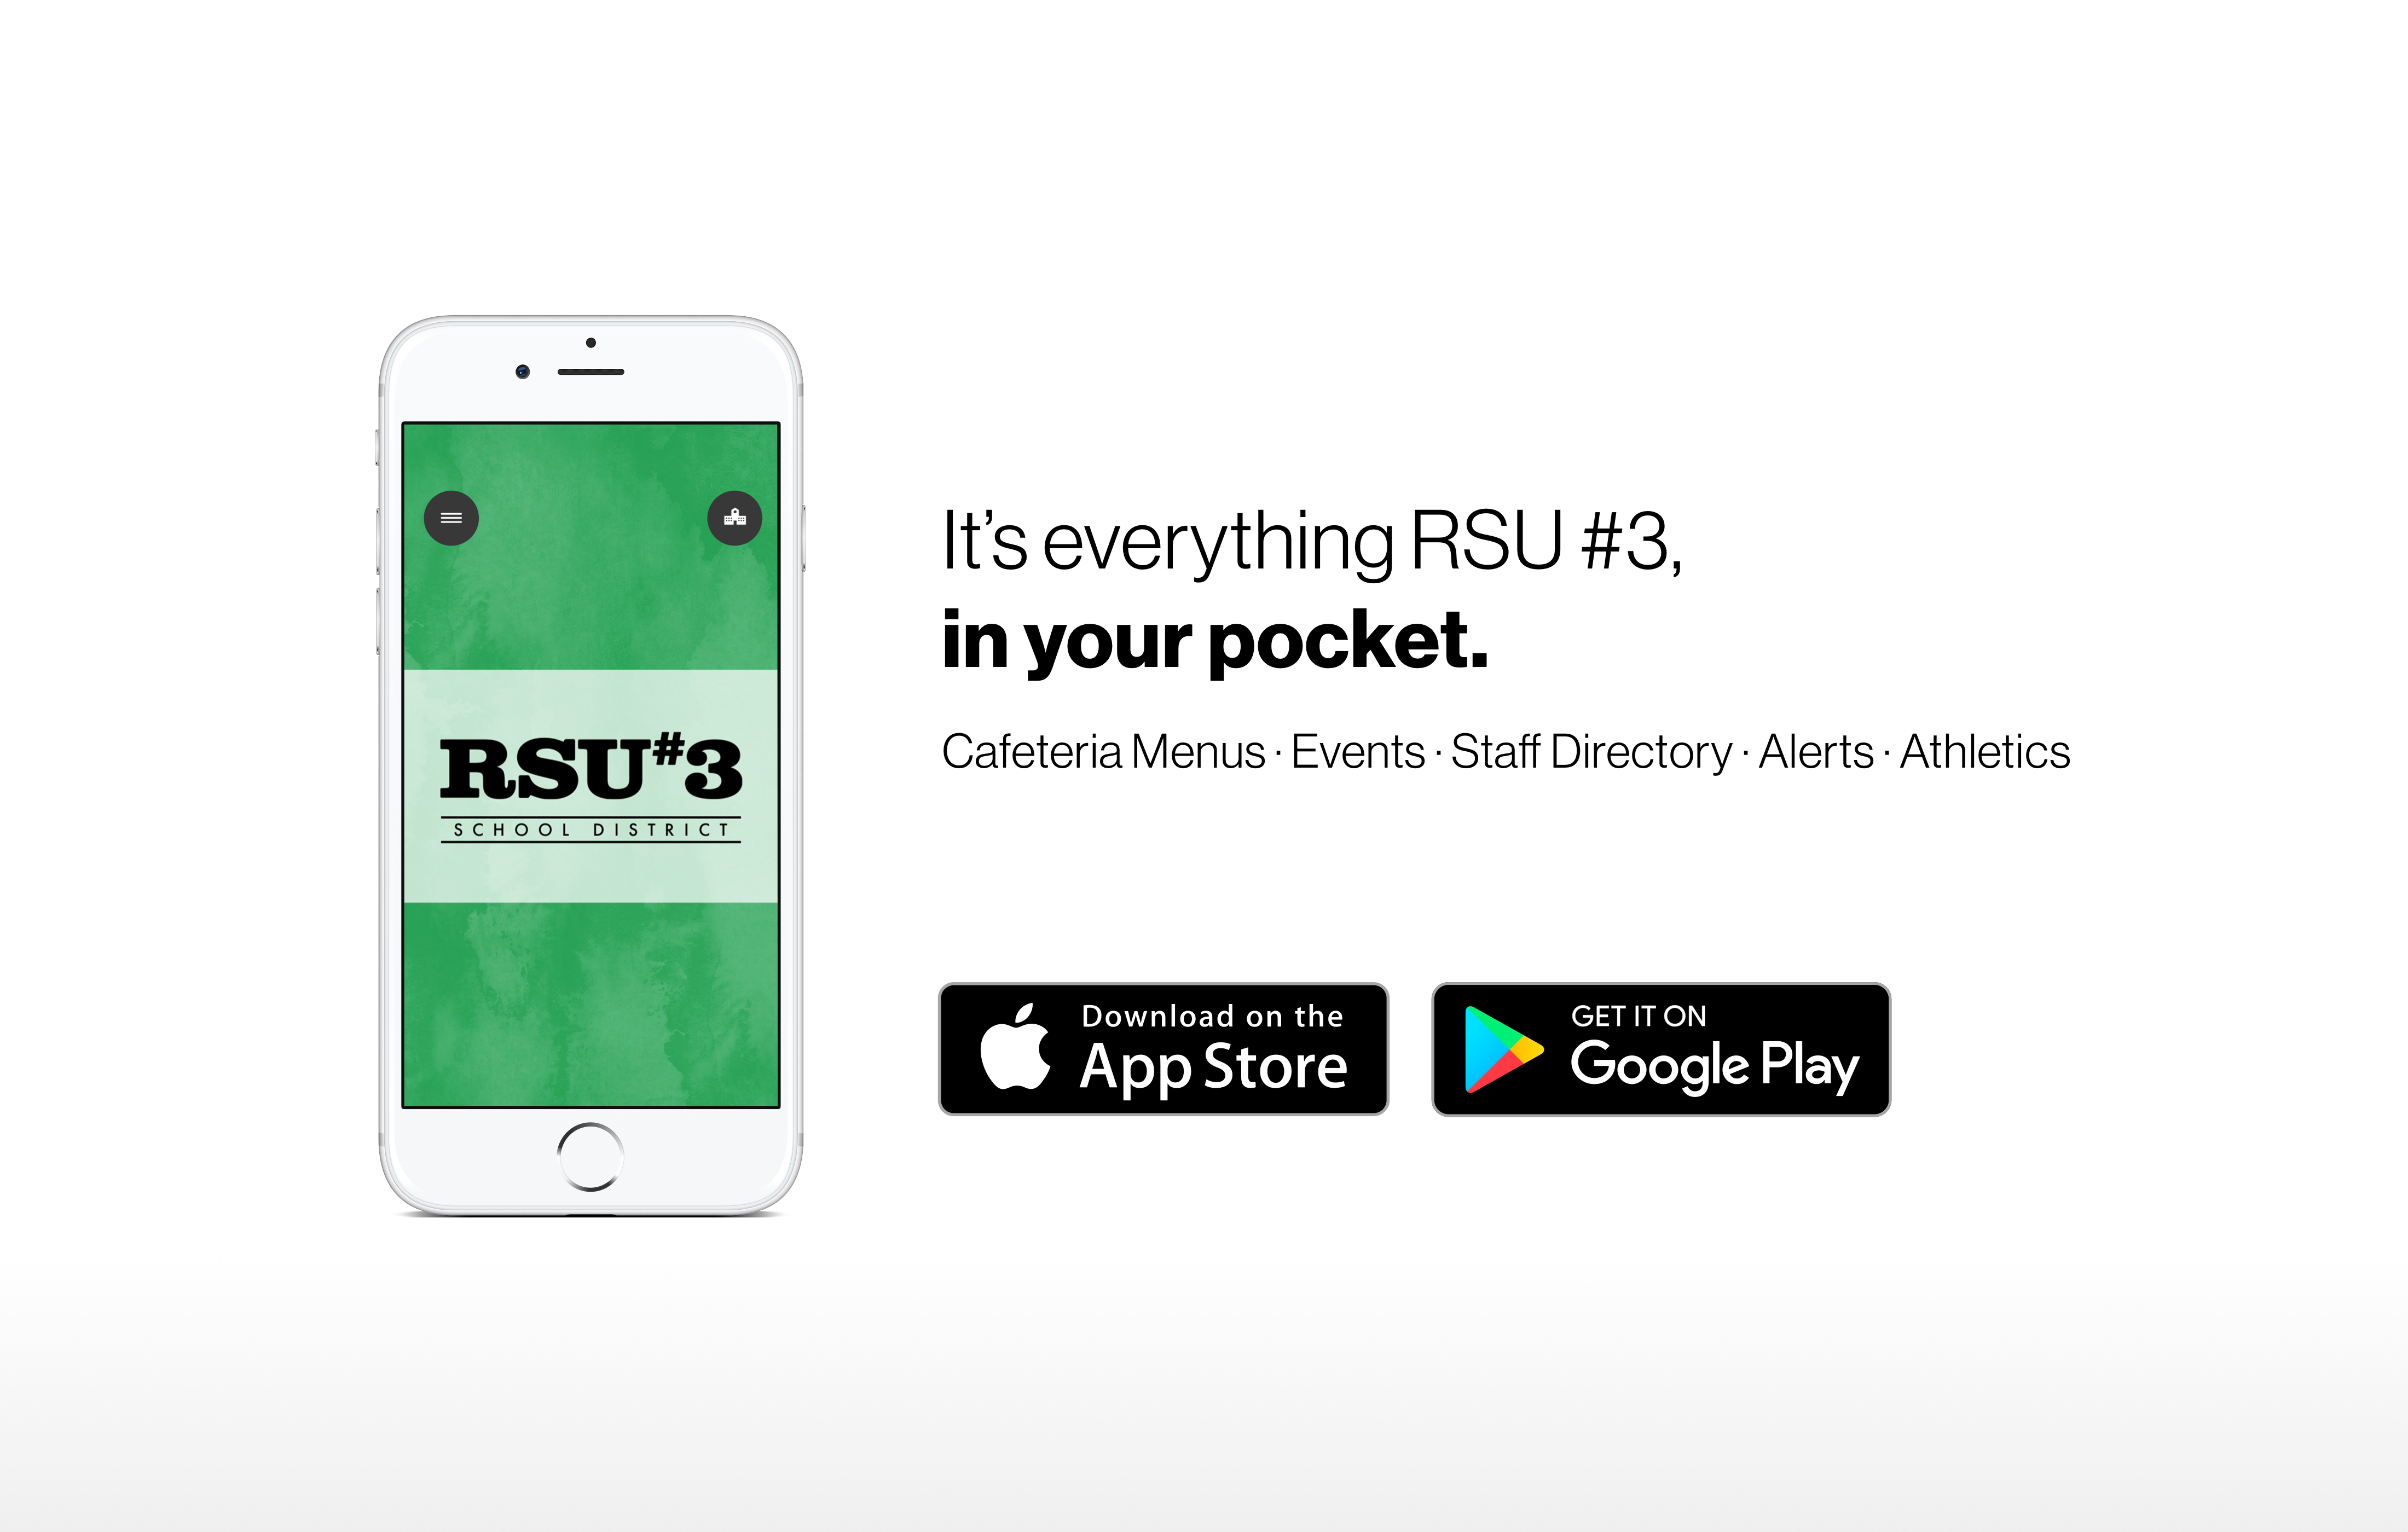 It's everything RSU #3 in your pocket